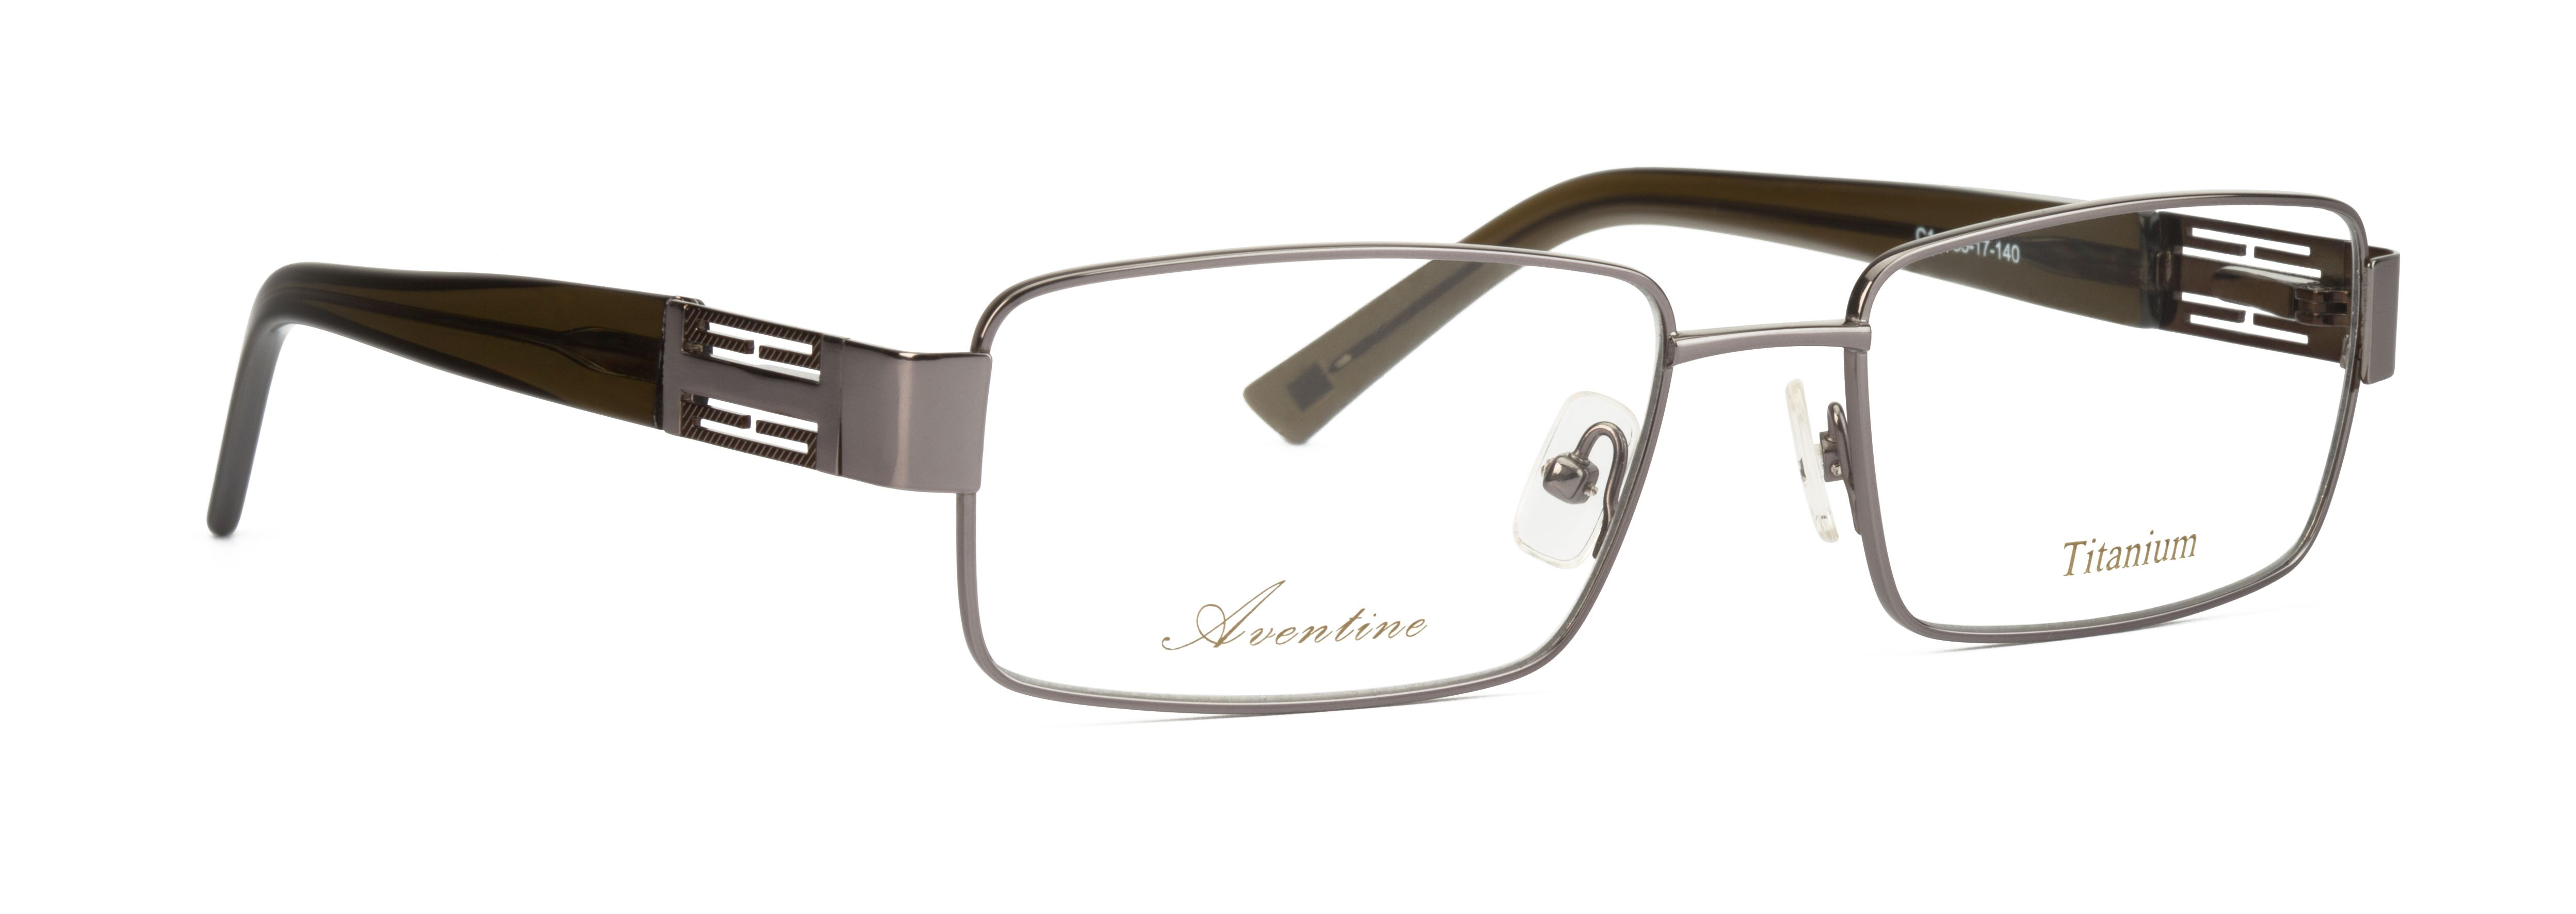 Quality frames for less. Using the finest materials, including ...